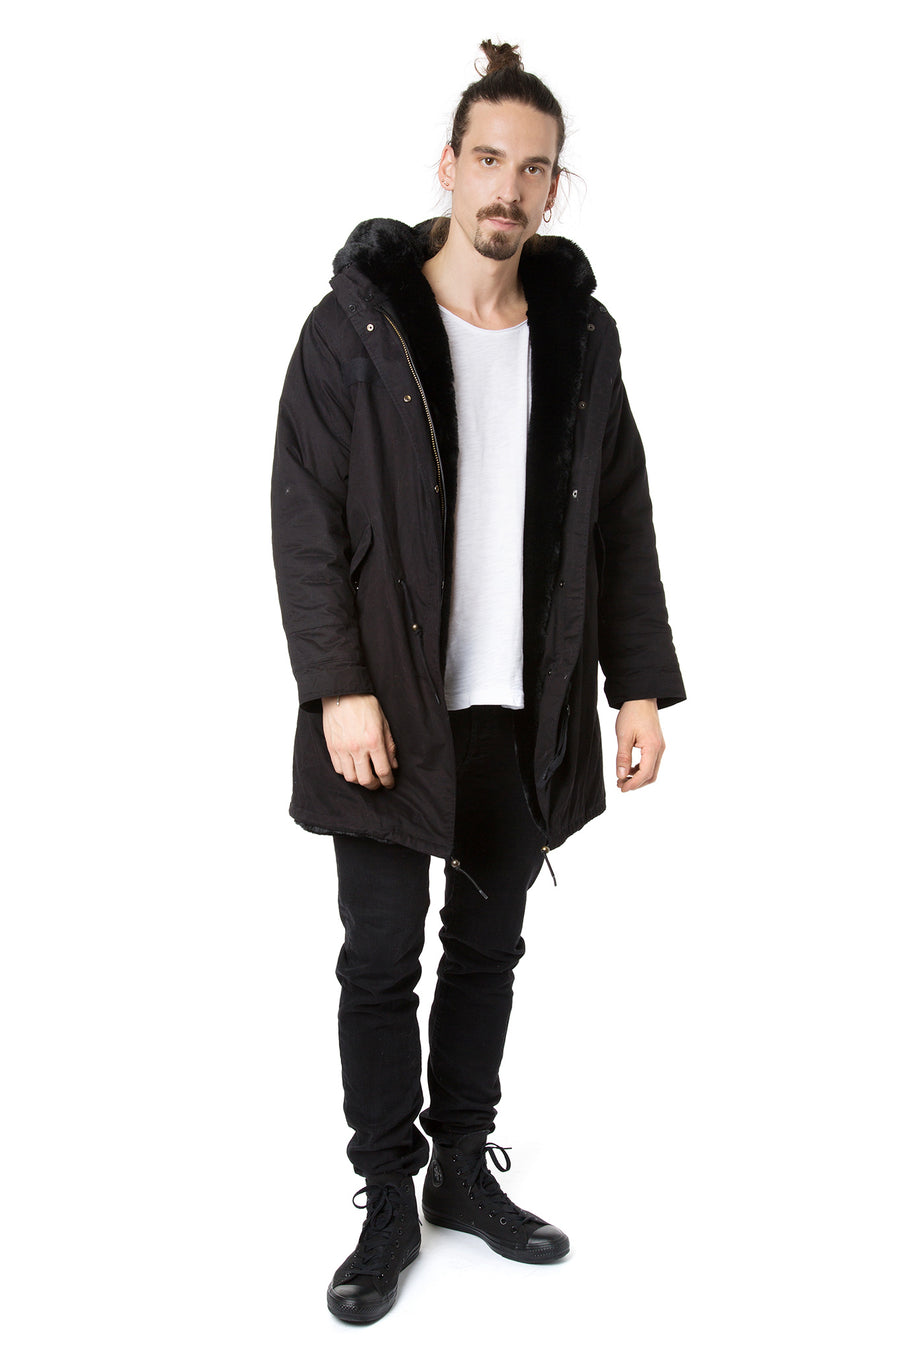 Men's Black on Black Darling Parka